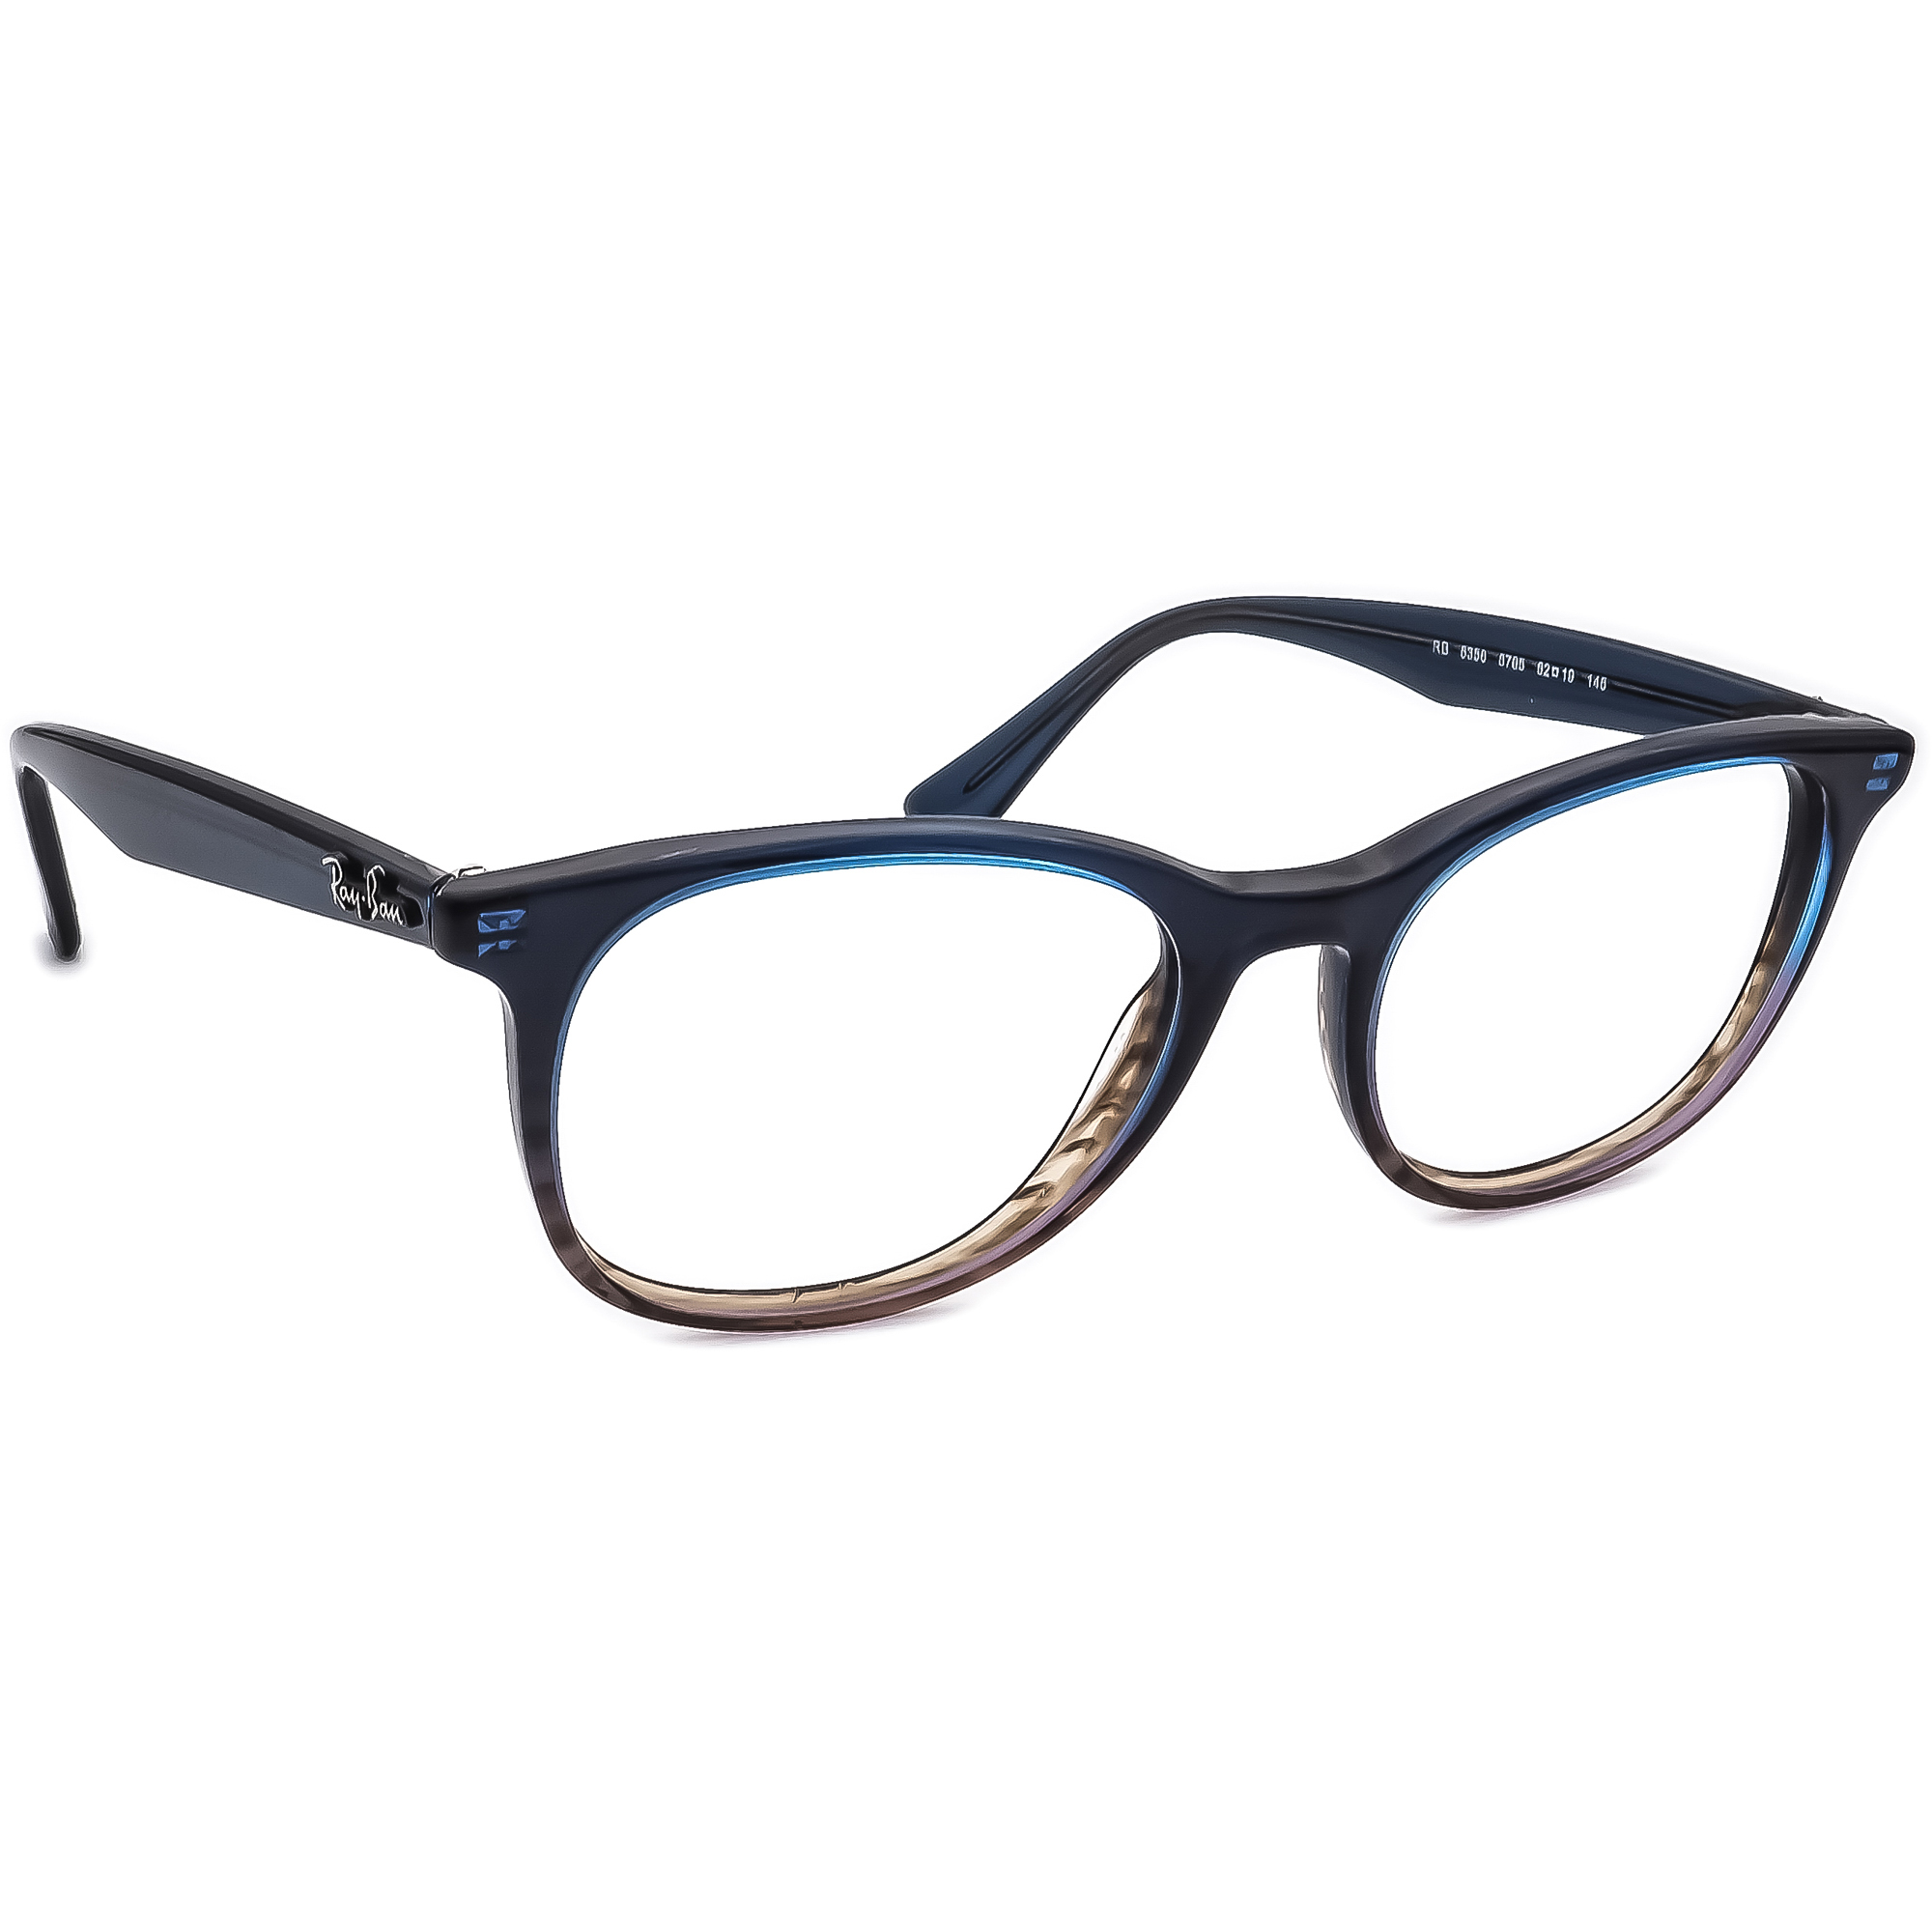 Ray Ban Eyeglasses RB 5356 5765 Blue Gray Fade Other Shape Frame 52[]19 145